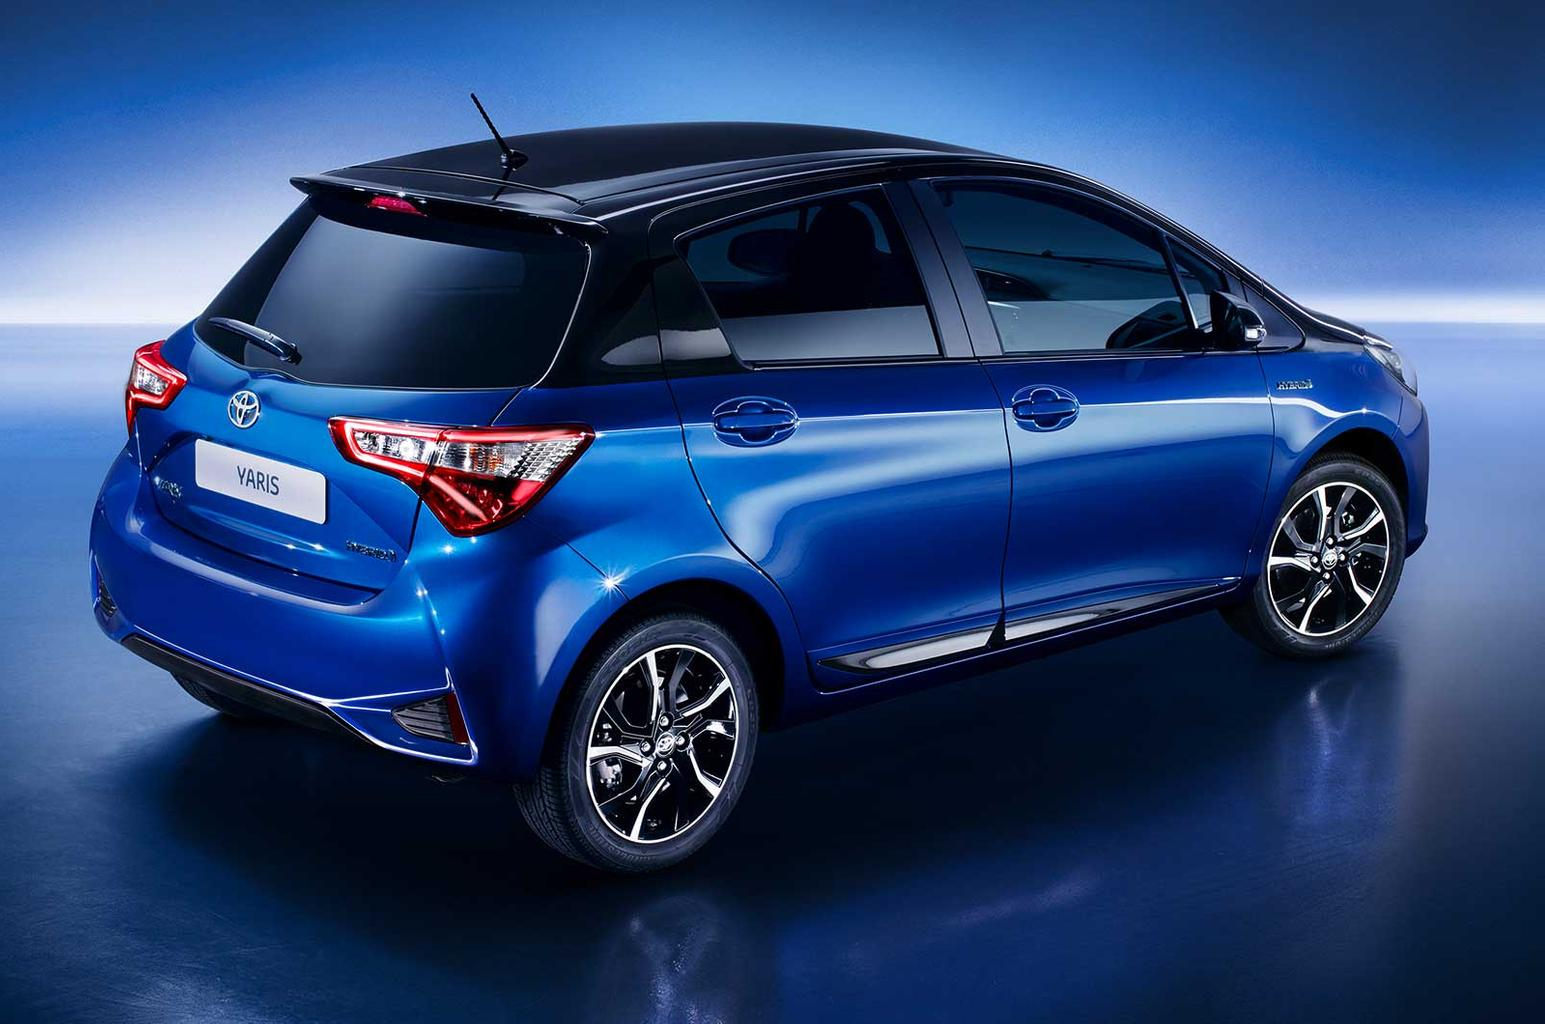 2017 Toyota Yaris priced from £12,495